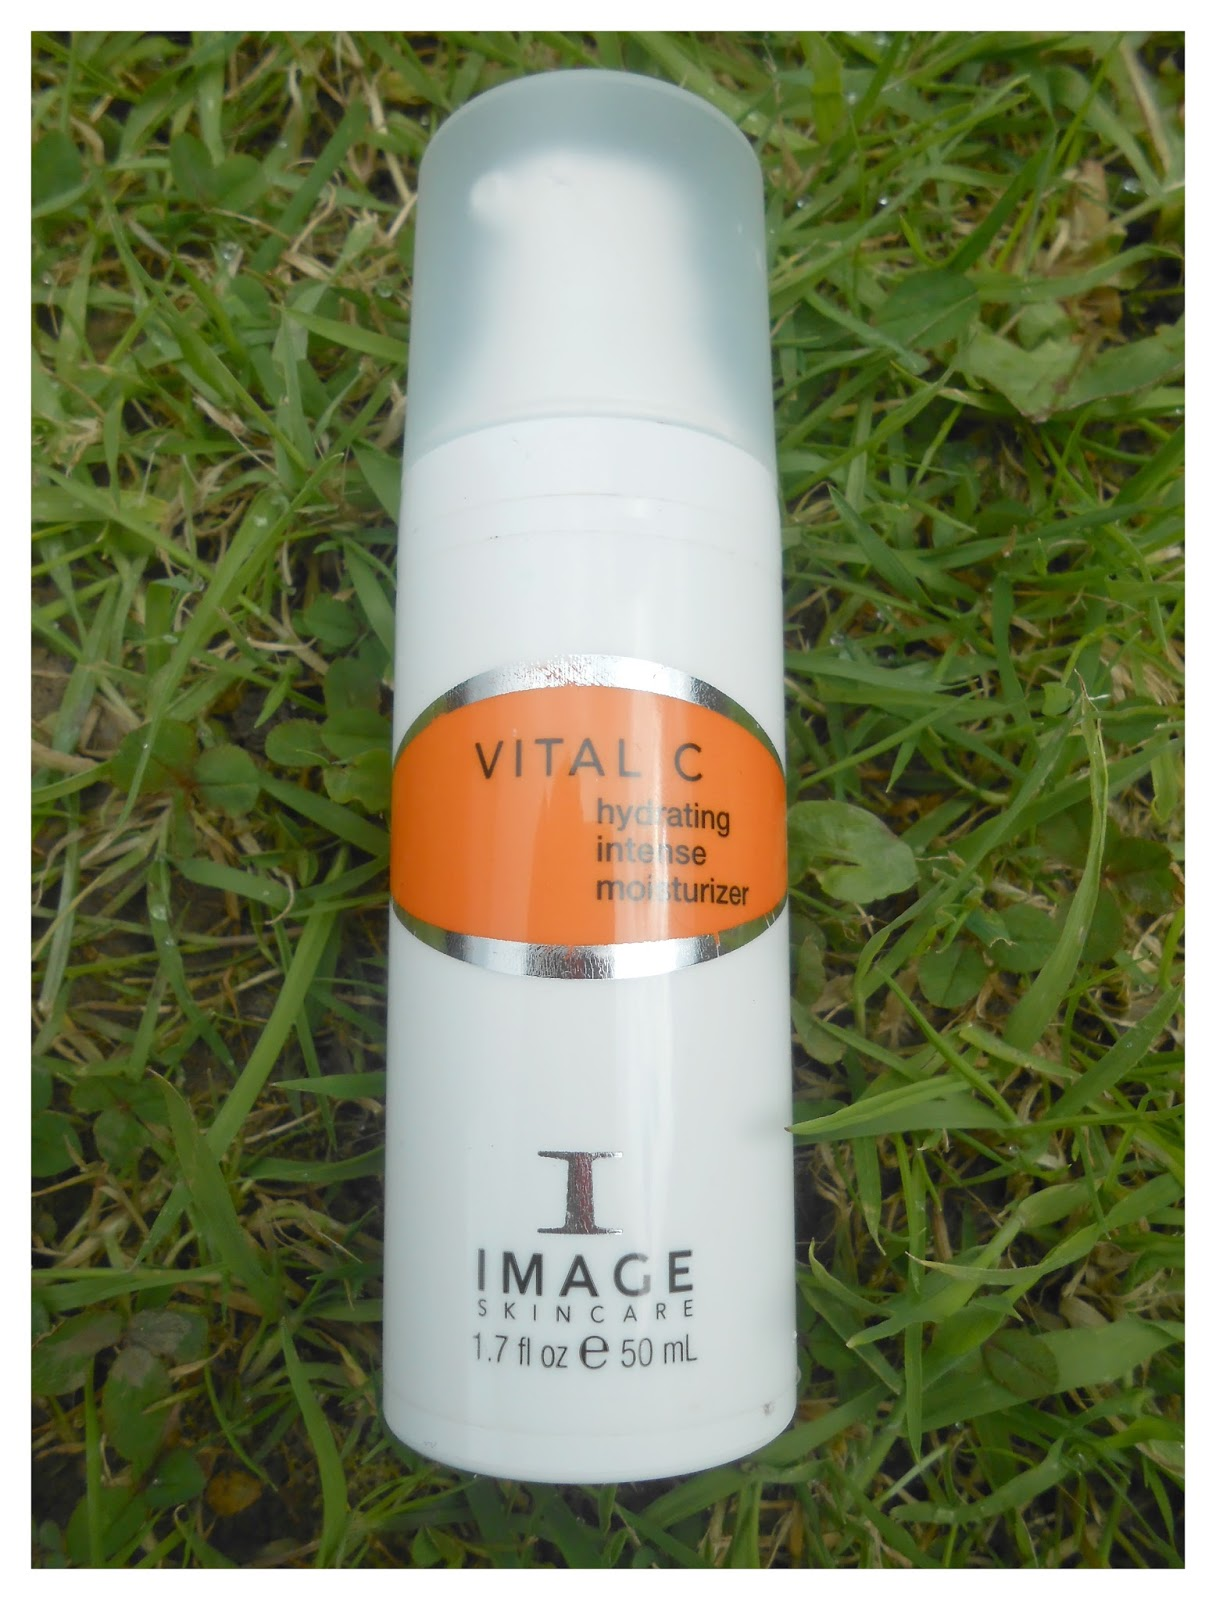 Image Skincare, Vital C, Clinical Skincare, Dehydrated Skin